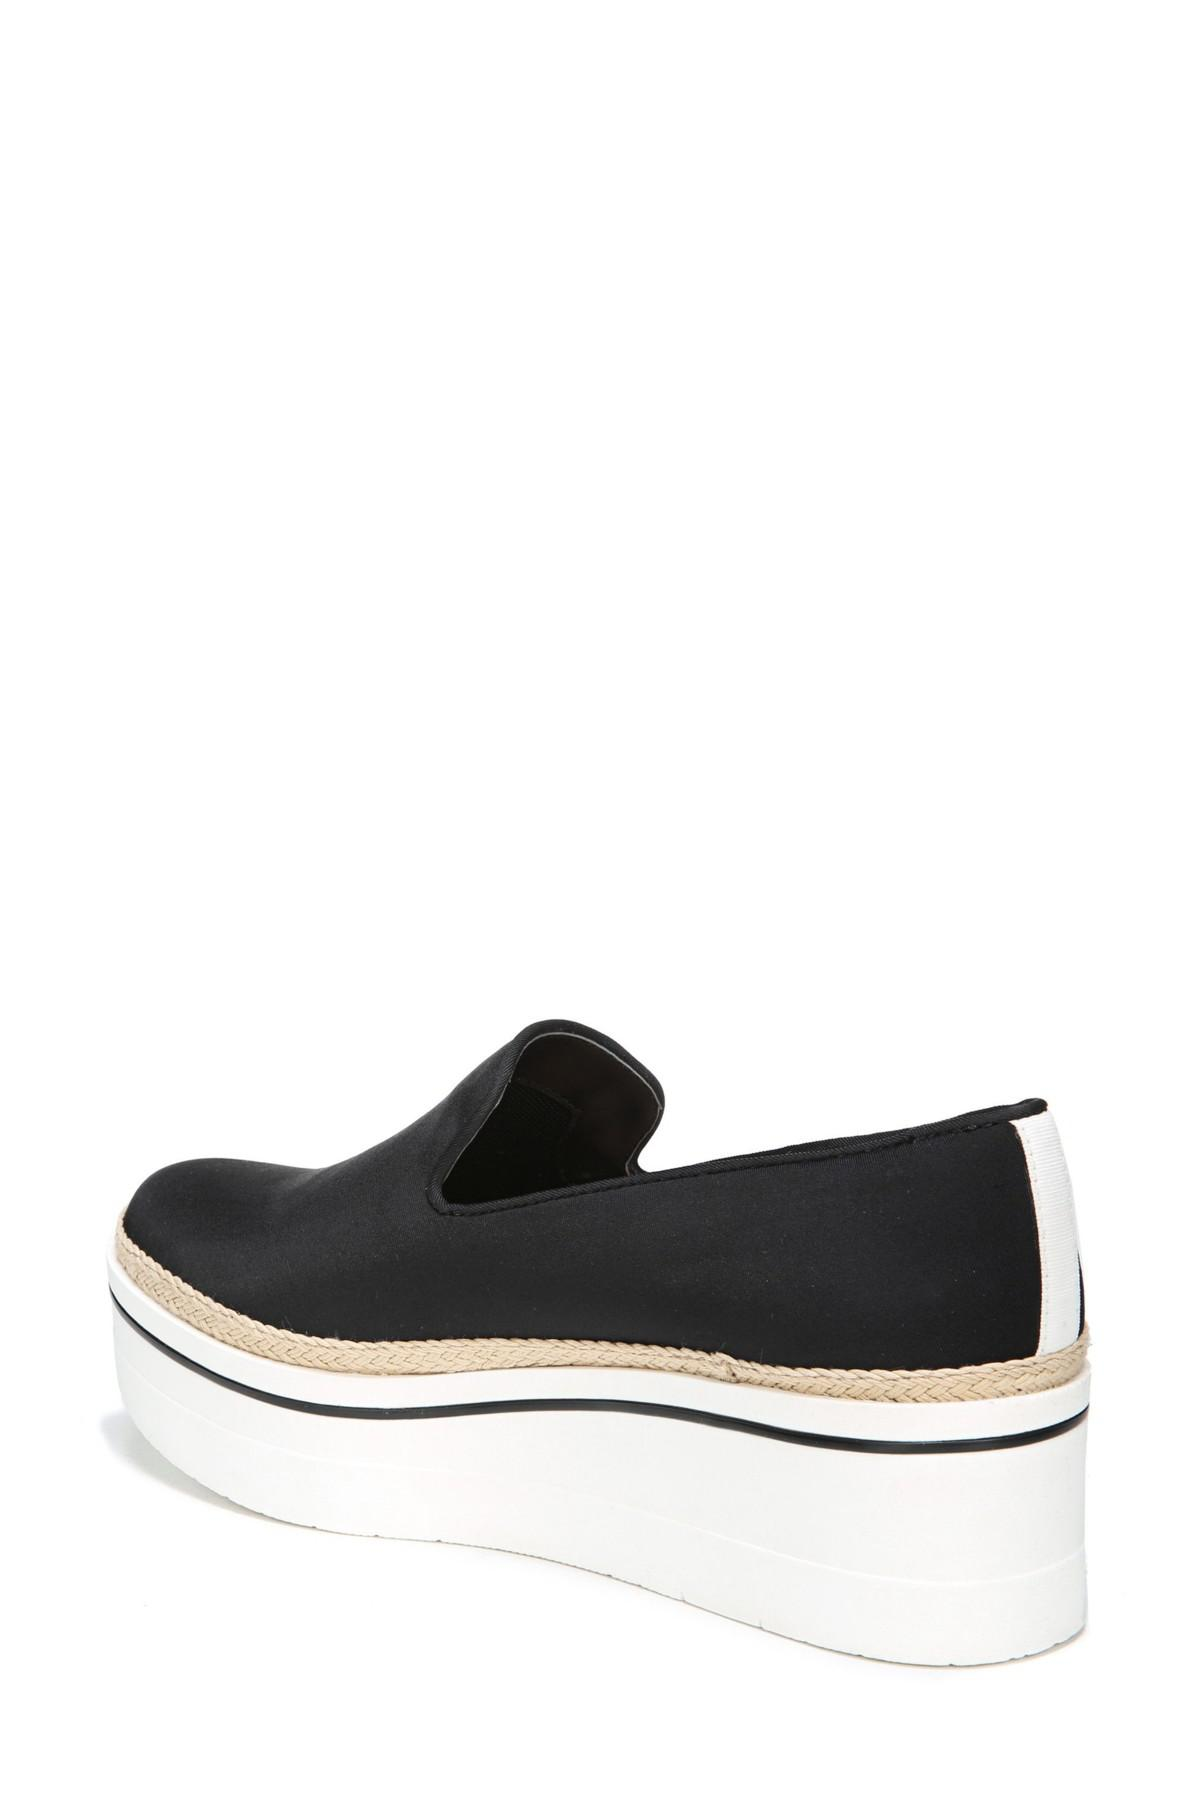 142aea48346 Dr. Scholls - Black Leota Platform Slip-on Shoe - Lyst. View fullscreen